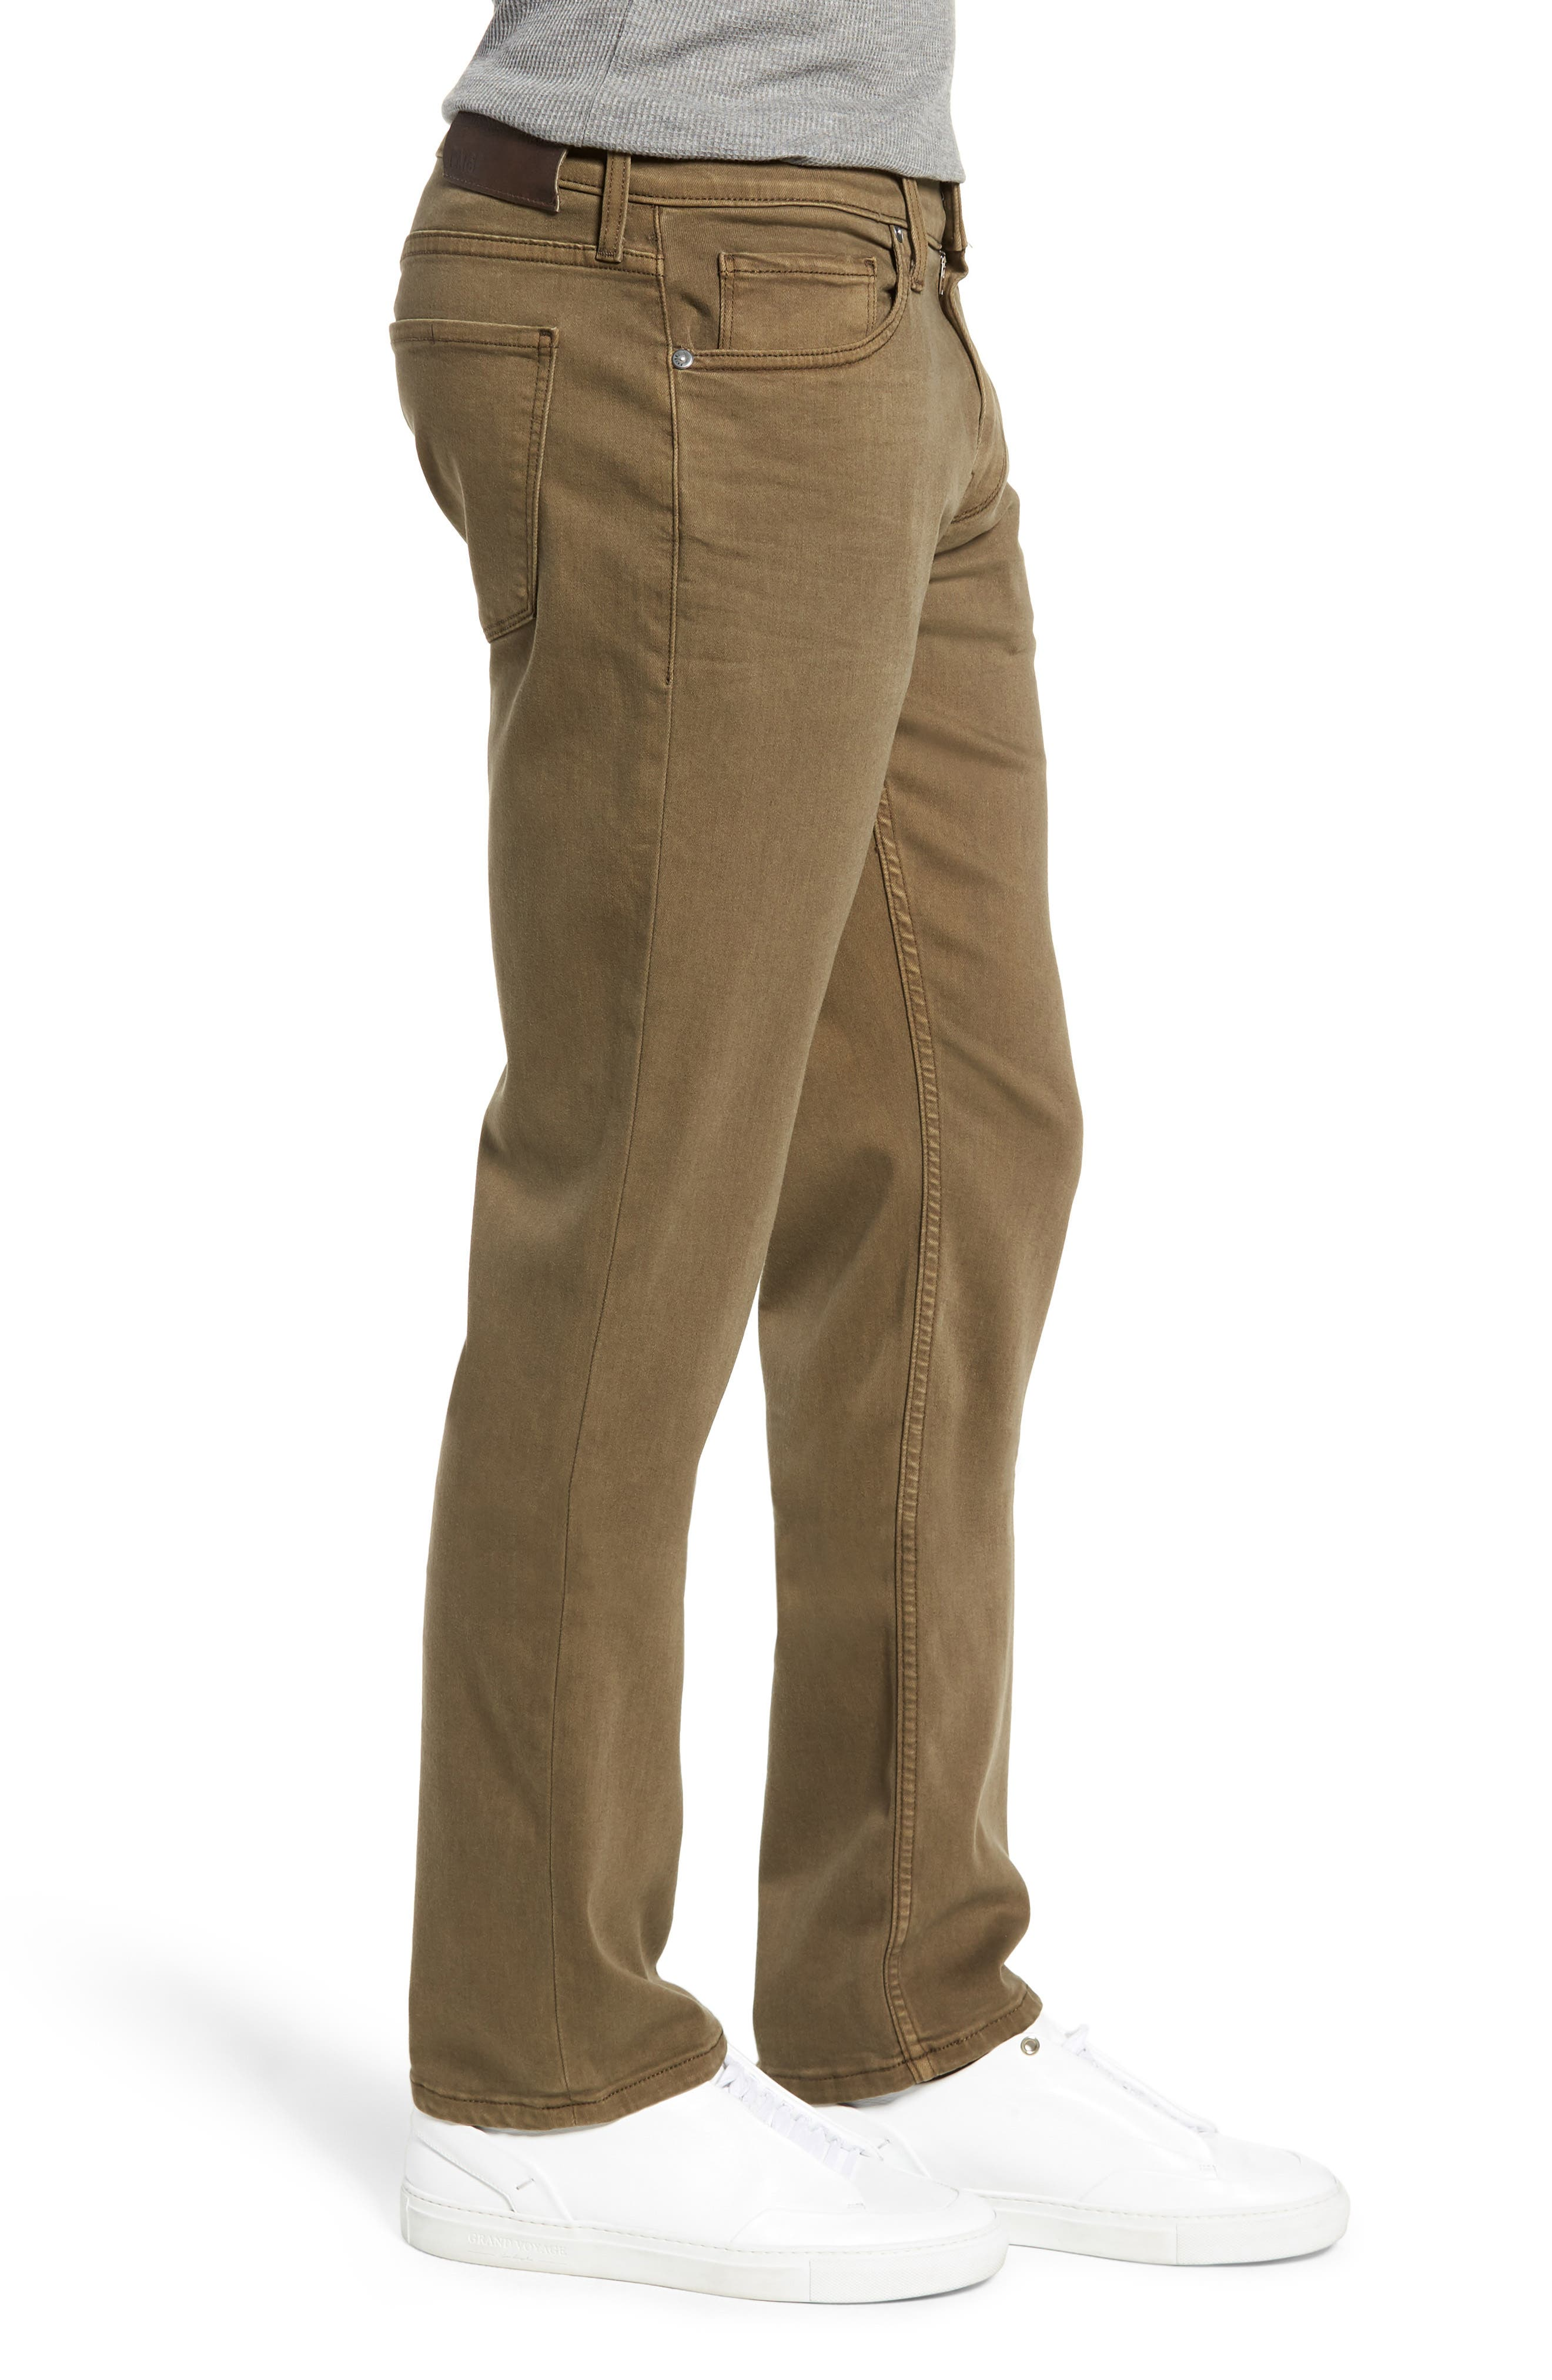 Transcend - Normandie Straight Leg Jeans,                             Alternate thumbnail 3, color,                             VINTAGE ARTICHOKE